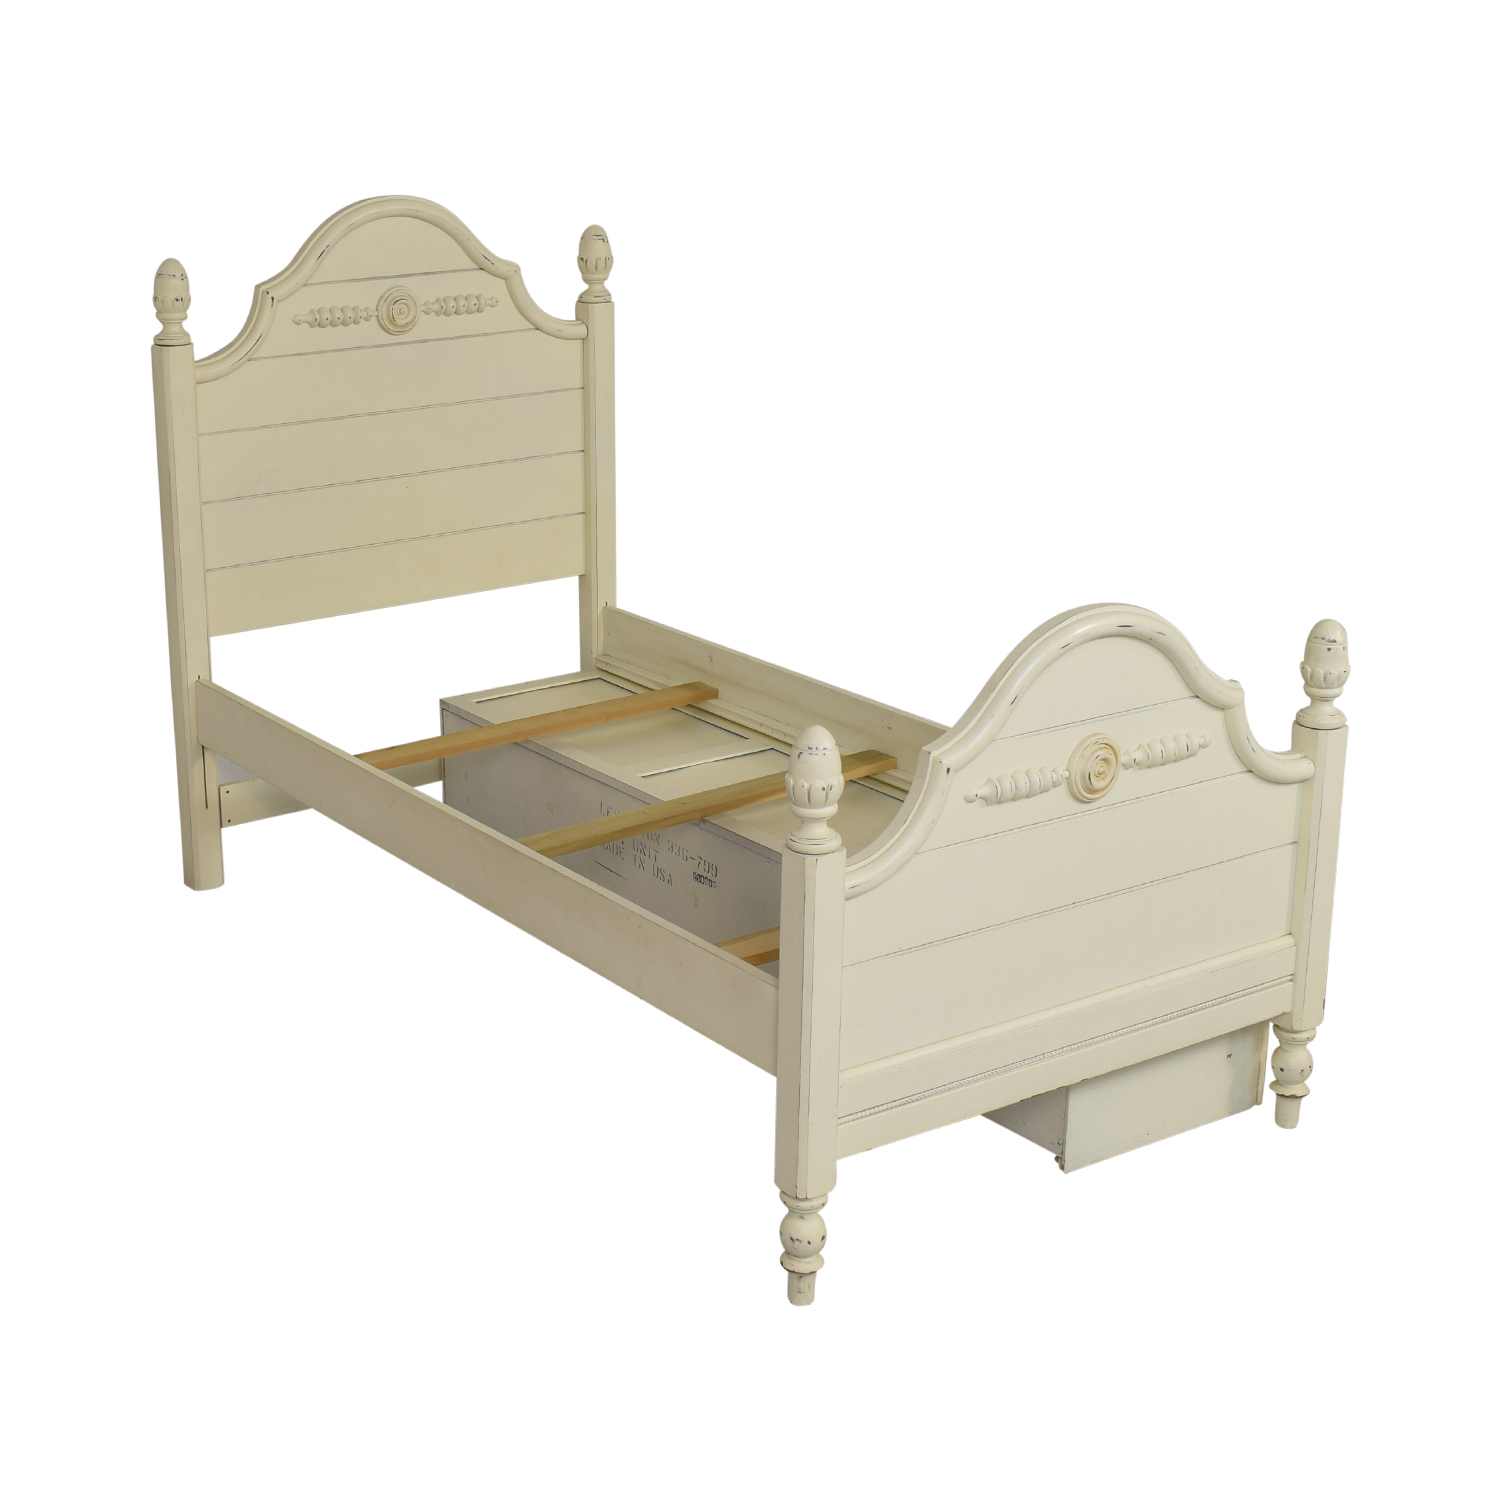 Lexington Furniture Lexington Furniture Distressed Twin Bed with Storage discount